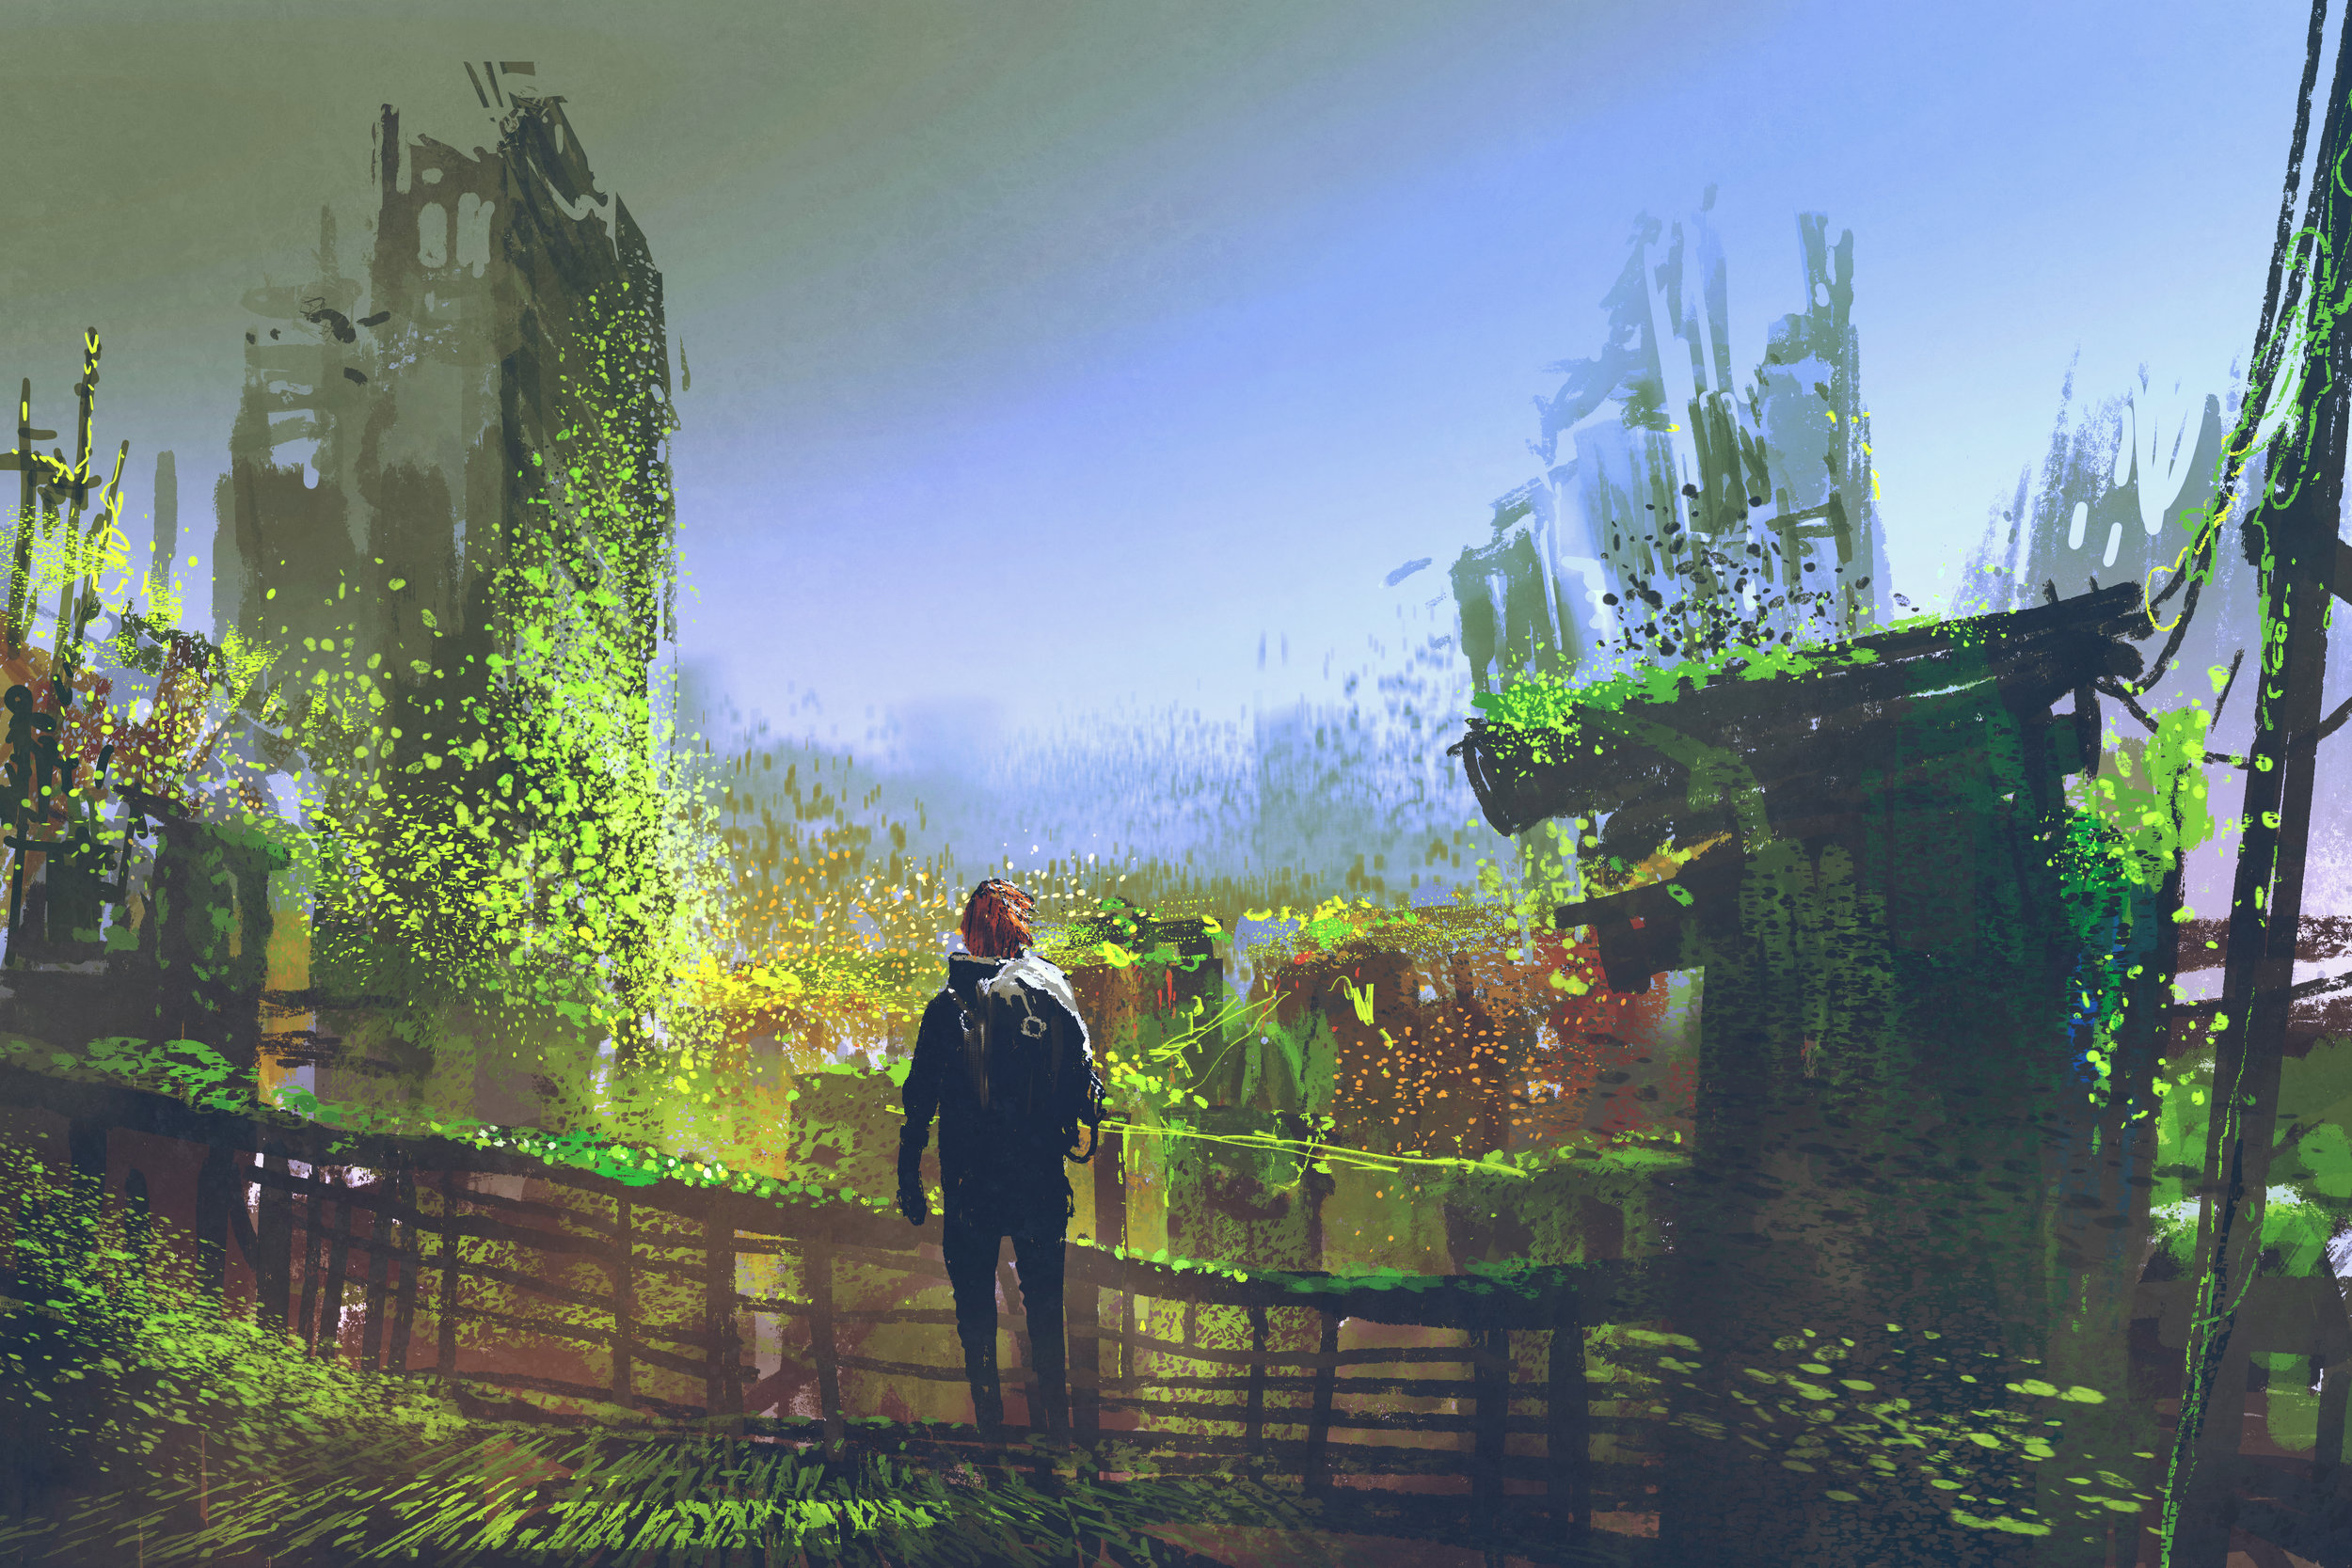 man-standing-on-old-bridge-in-overgrown-city-669548906_4500x3000.jpeg